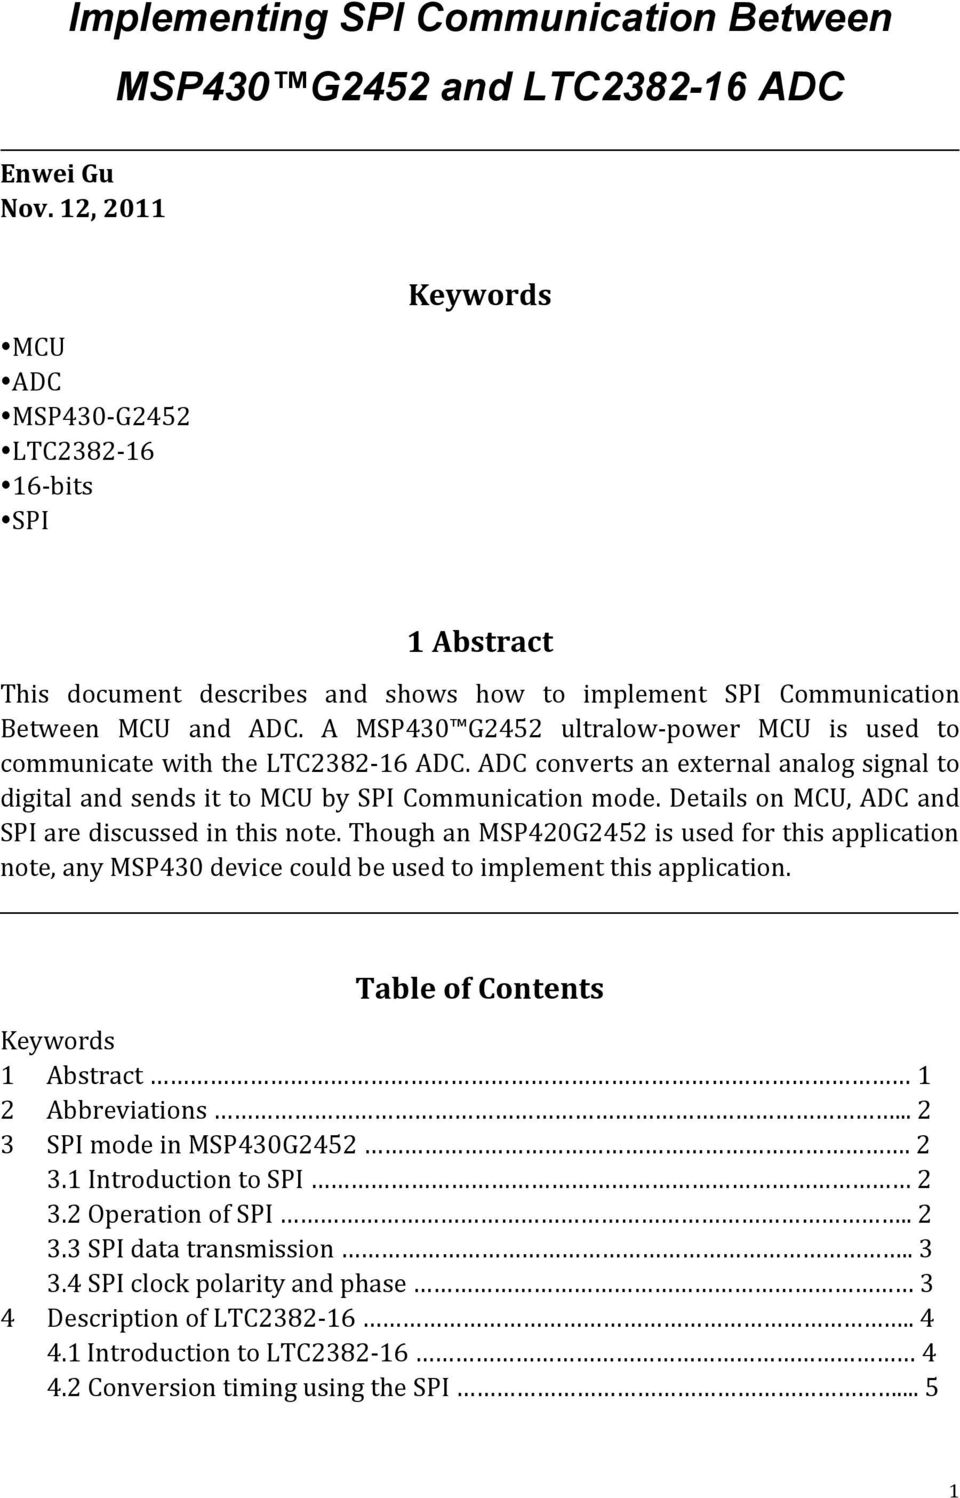 Implementing SPI Communication Between MSP430 G2452 and LTC ADC - PDF